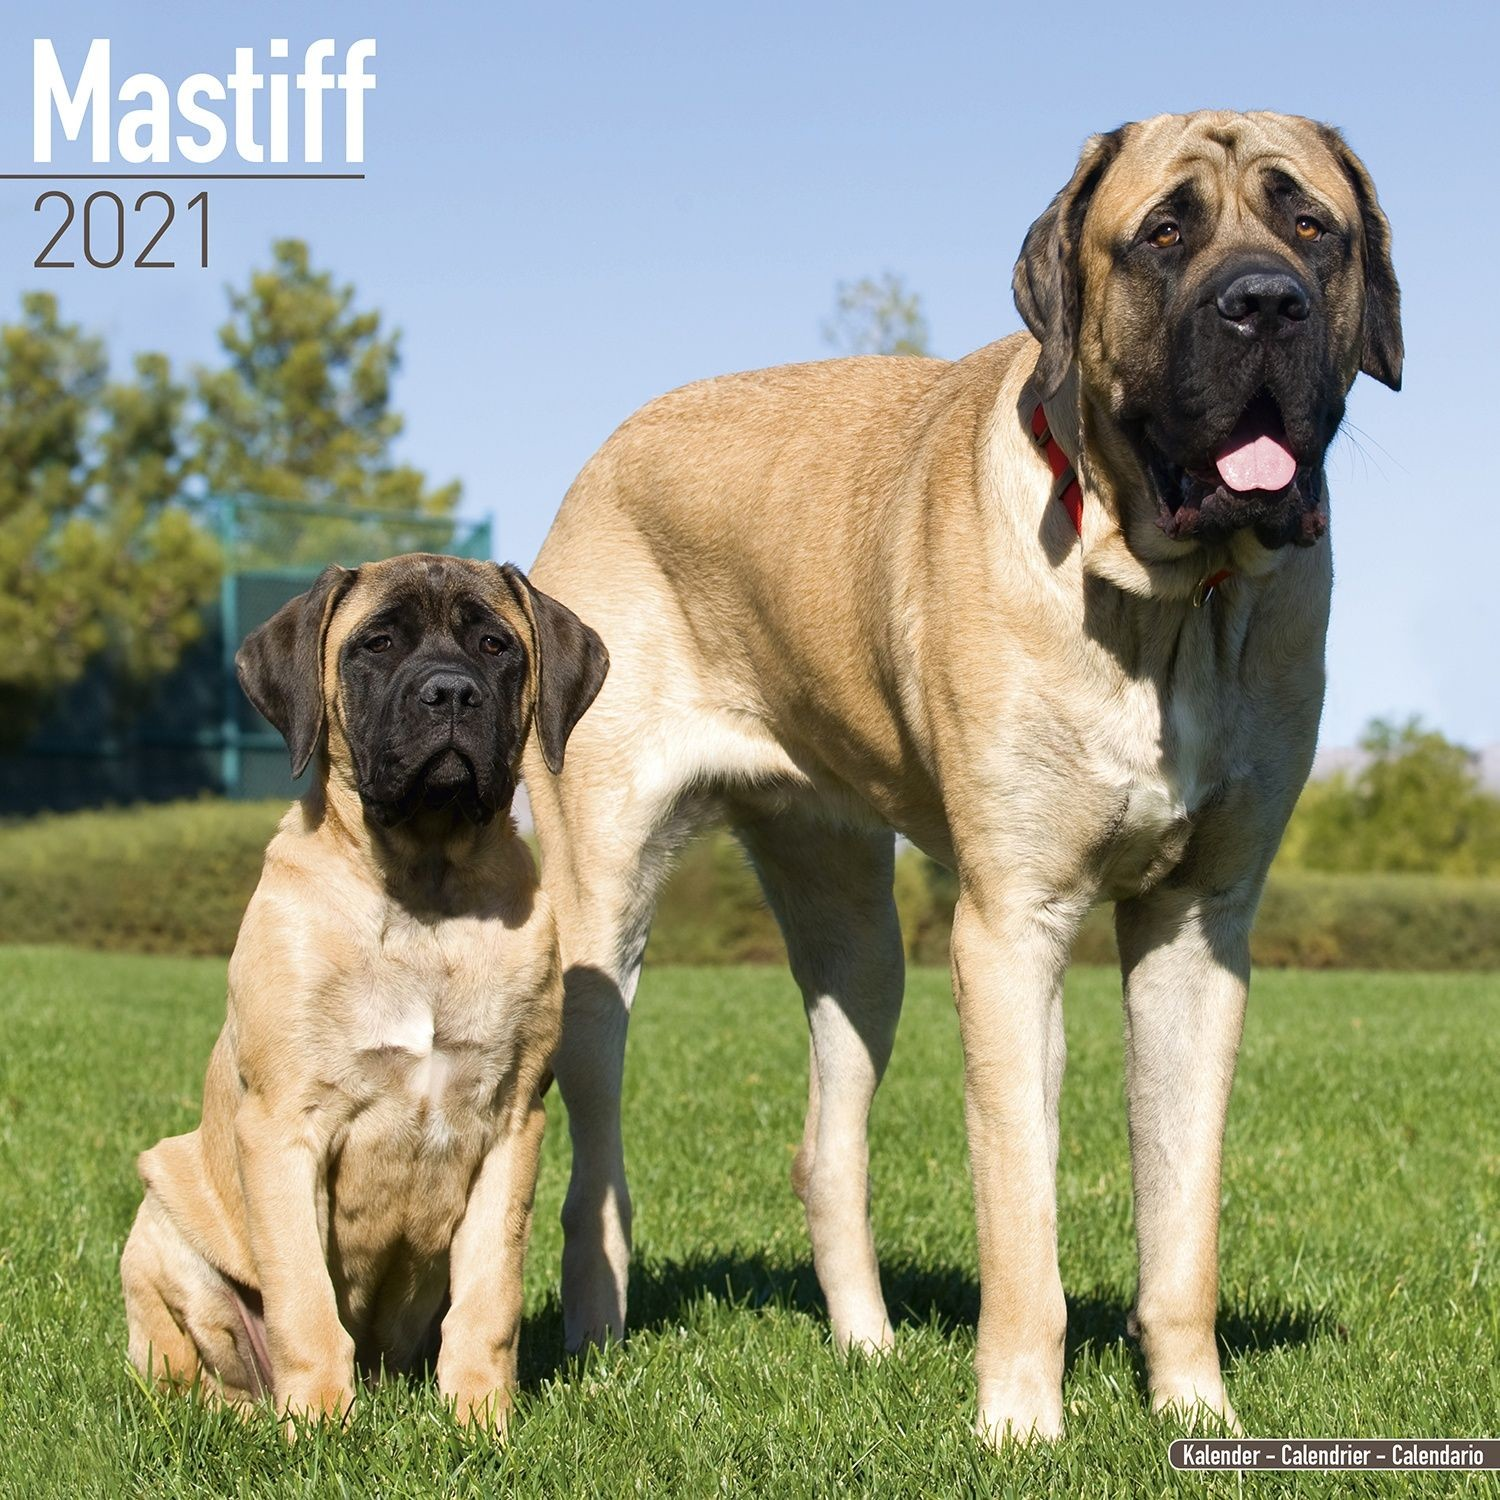 Mastiff Wall Calendar 2021 by Avonside